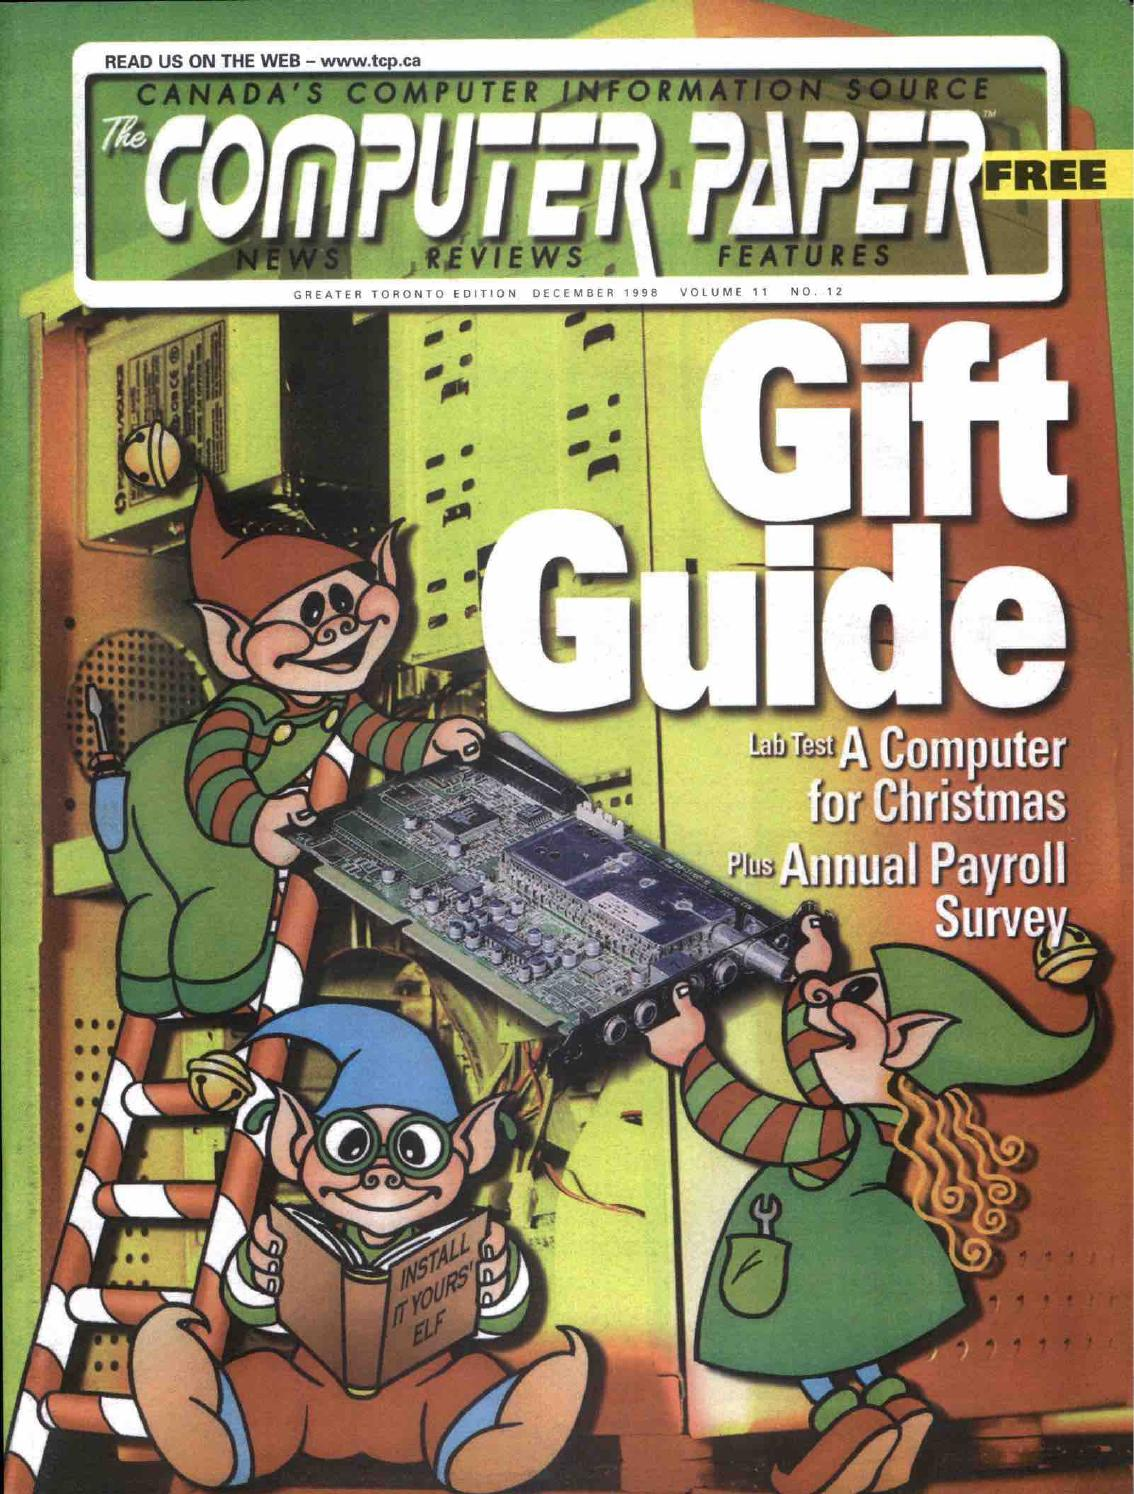 634b97faa38 1998 12 The Computer Paper - Ontario Edition by The Computer Paper - issuu